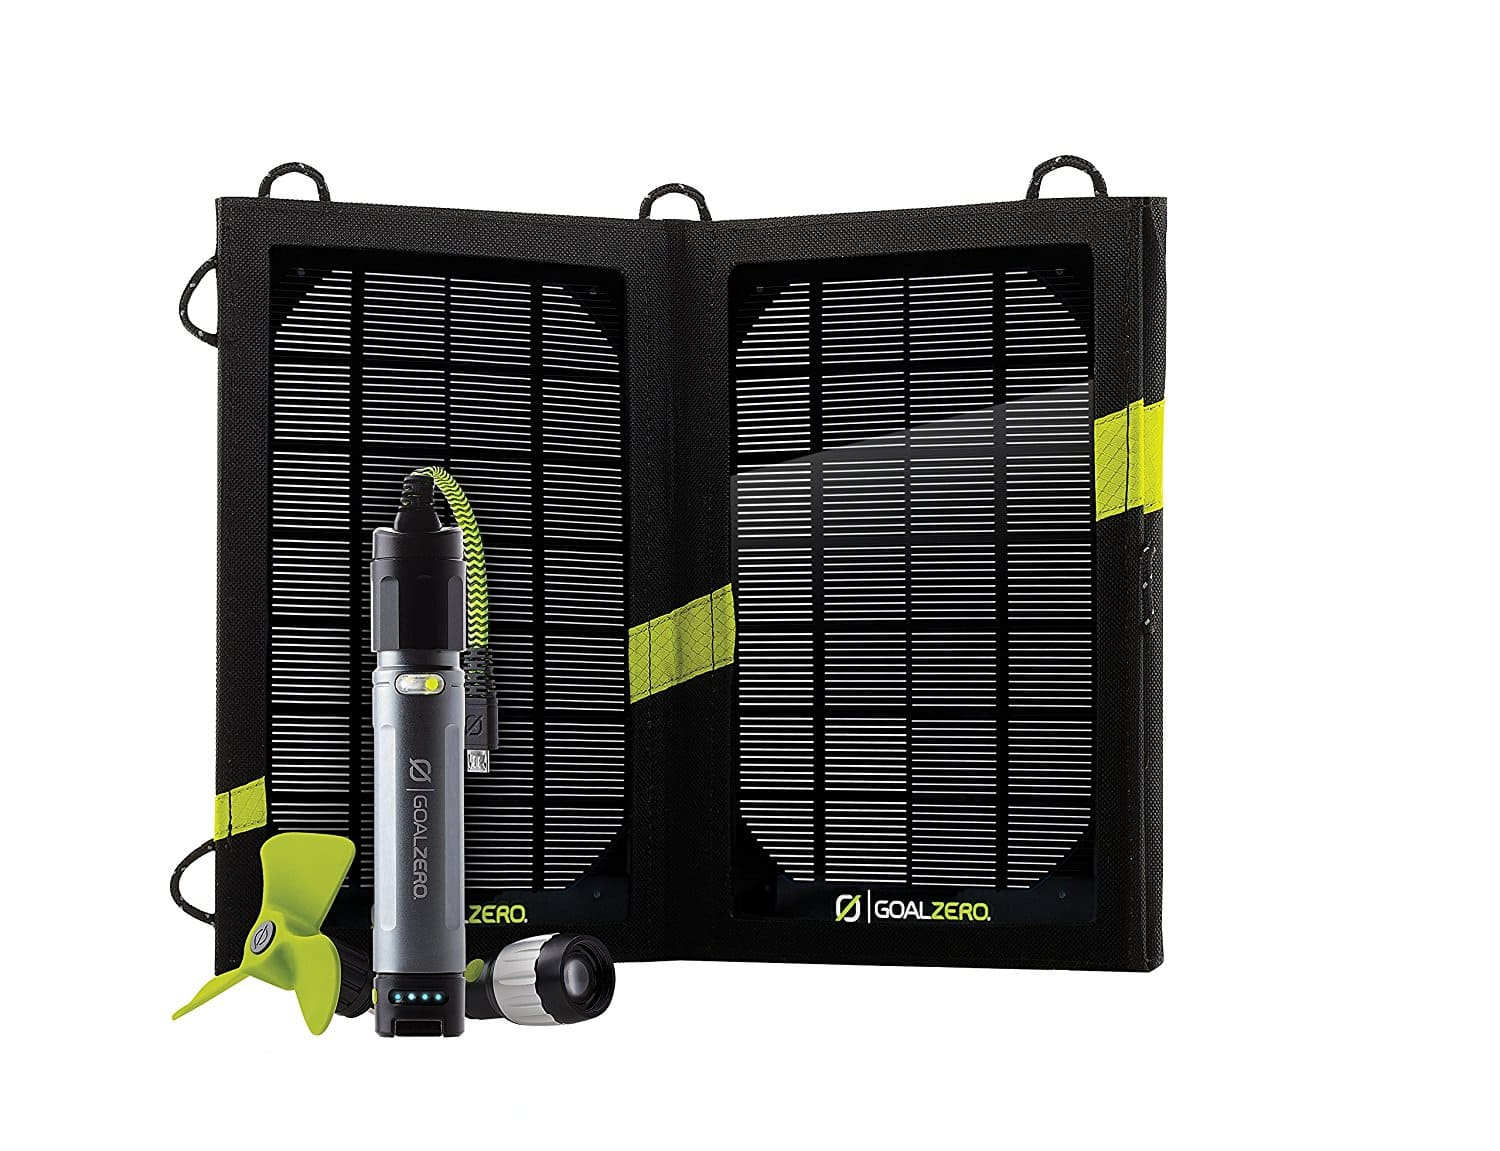 Goal Zero Switch 10 Recharger with Nomad 7 Solar Panel $29.81 at Sams Club YMMV